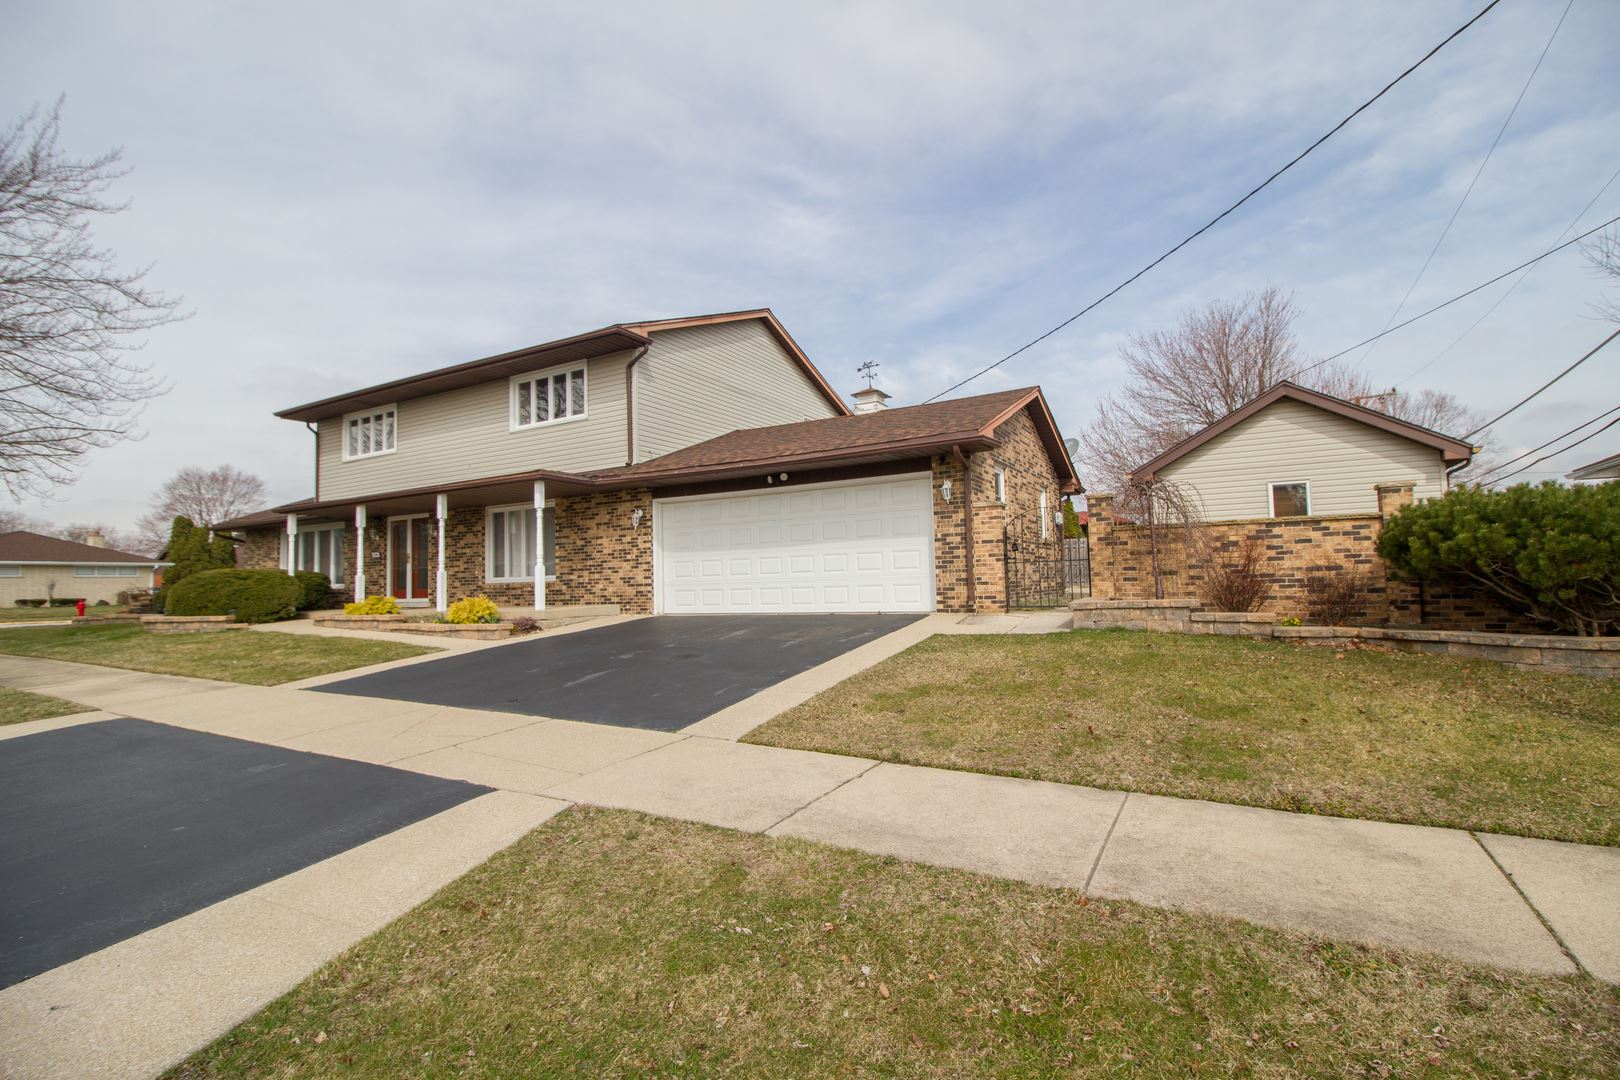 1100 E 172nd Street, South Holland, IL 60473 - #: 10675488